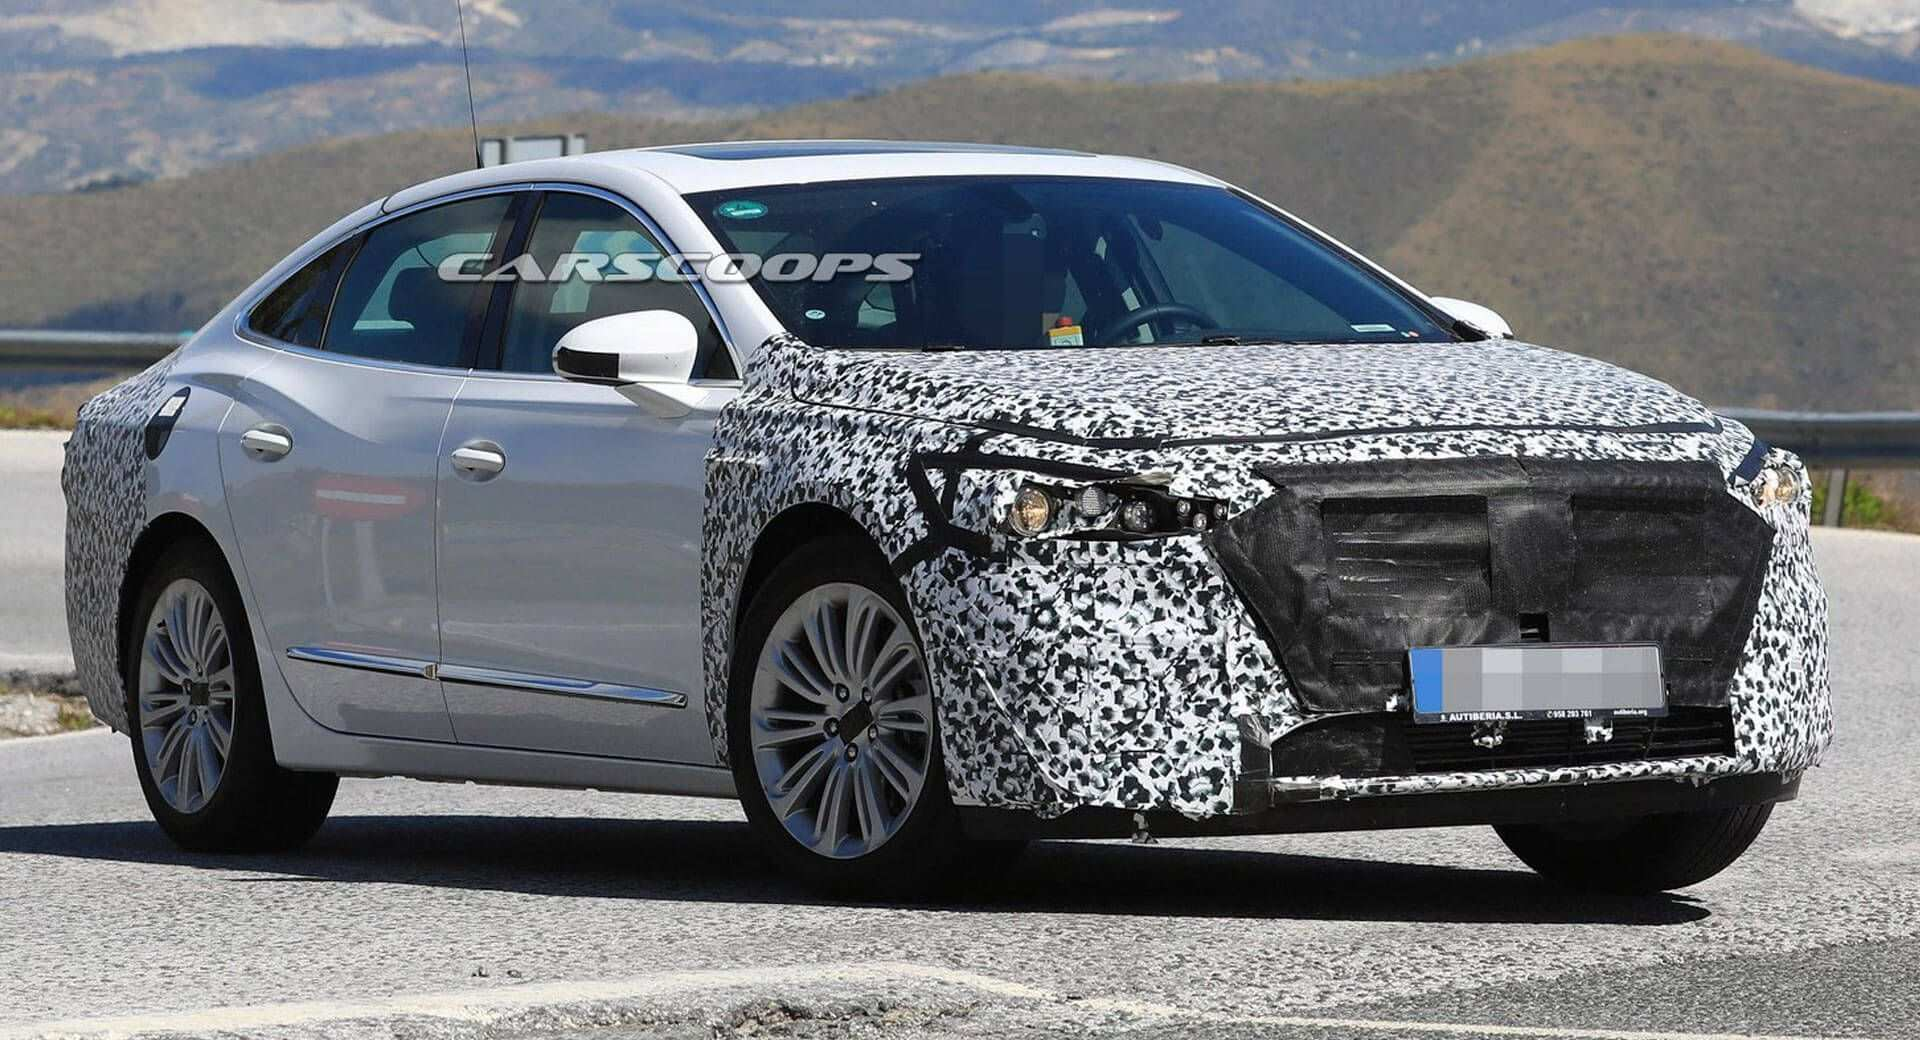 49 New 2020 Buick LaCrosses Exterior with 2020 Buick LaCrosses